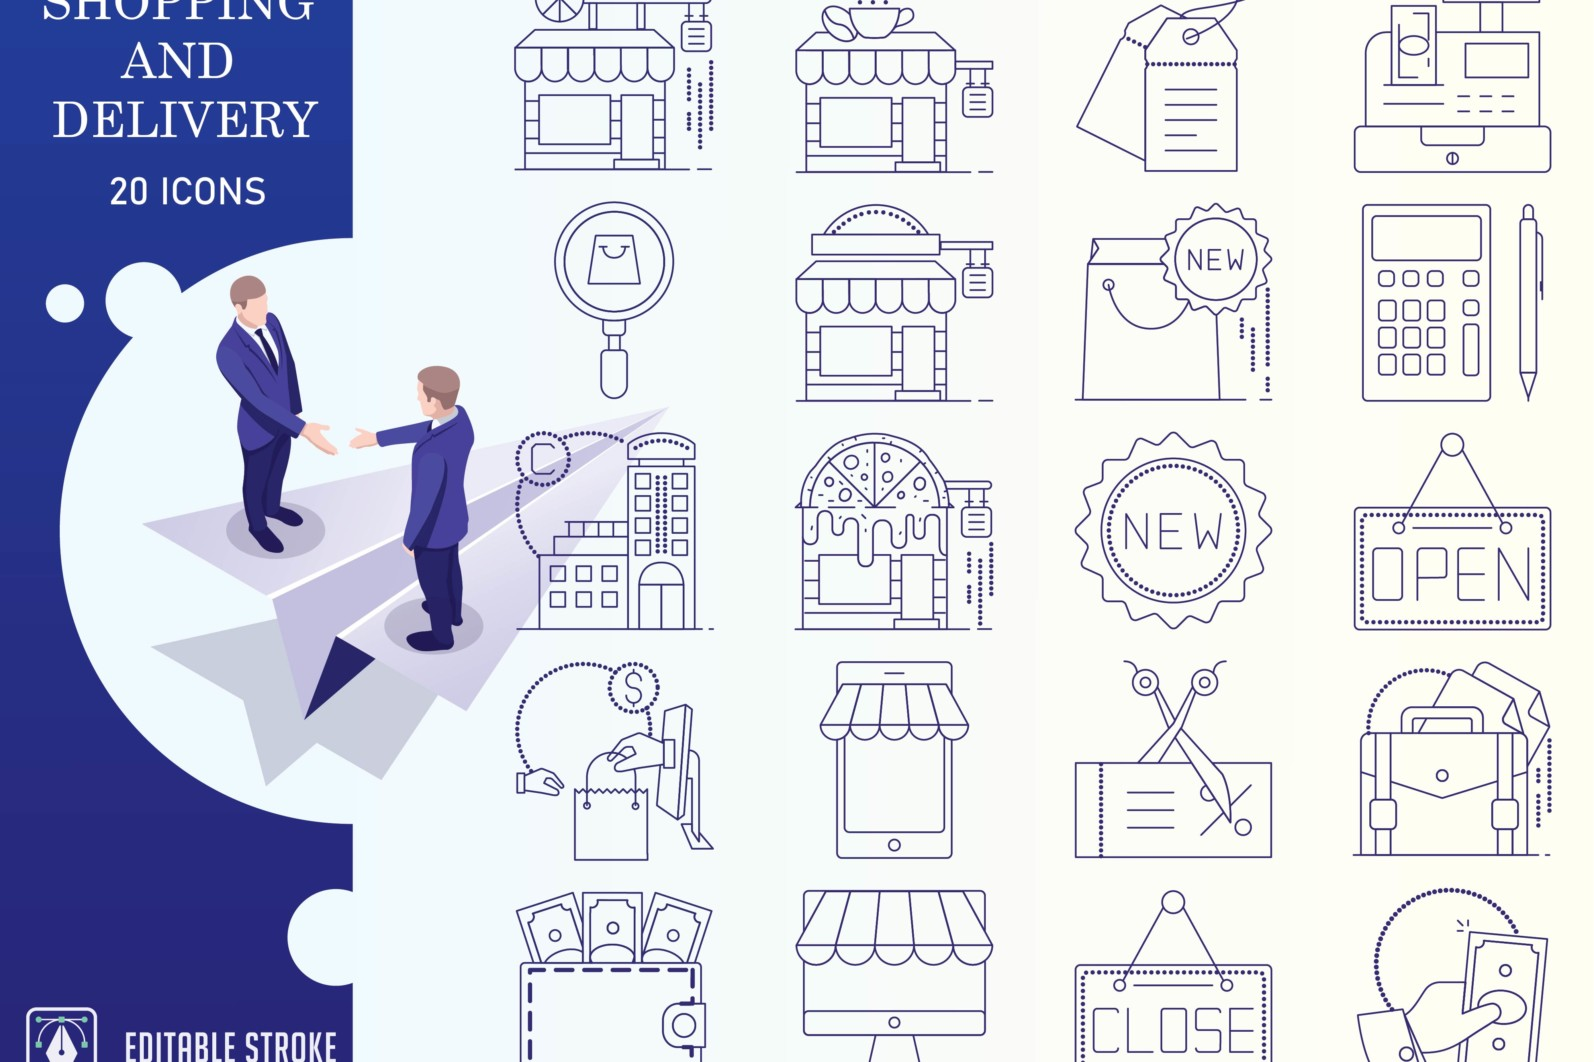 Outline : Shopping and E-commerce - Online Shopping Iconset 01 2 scaled -